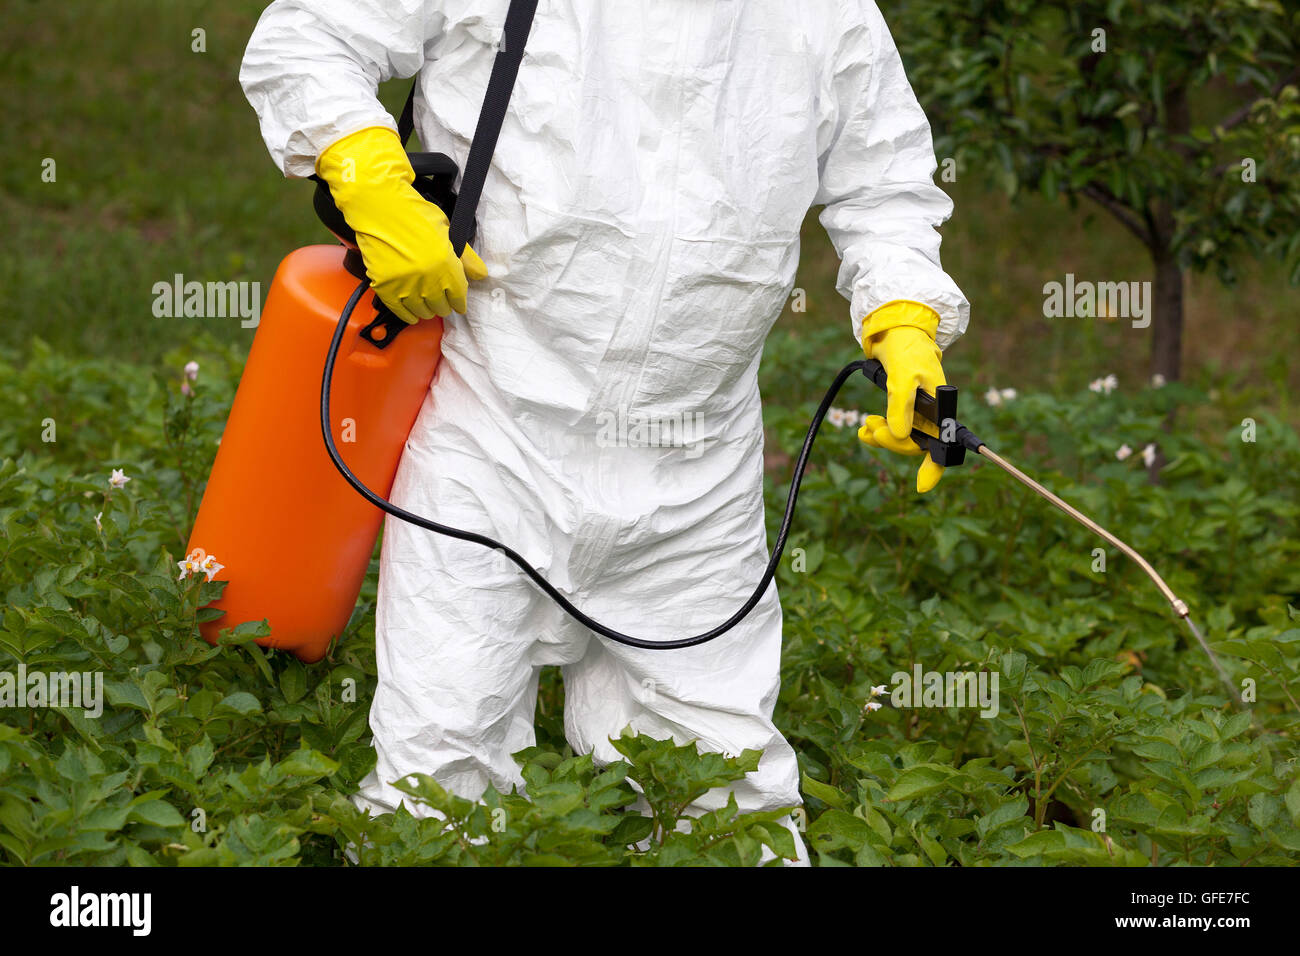 garden pesticides. Man Spraying Toxic Pesticides Or Insecticides In Vegetable Garden S